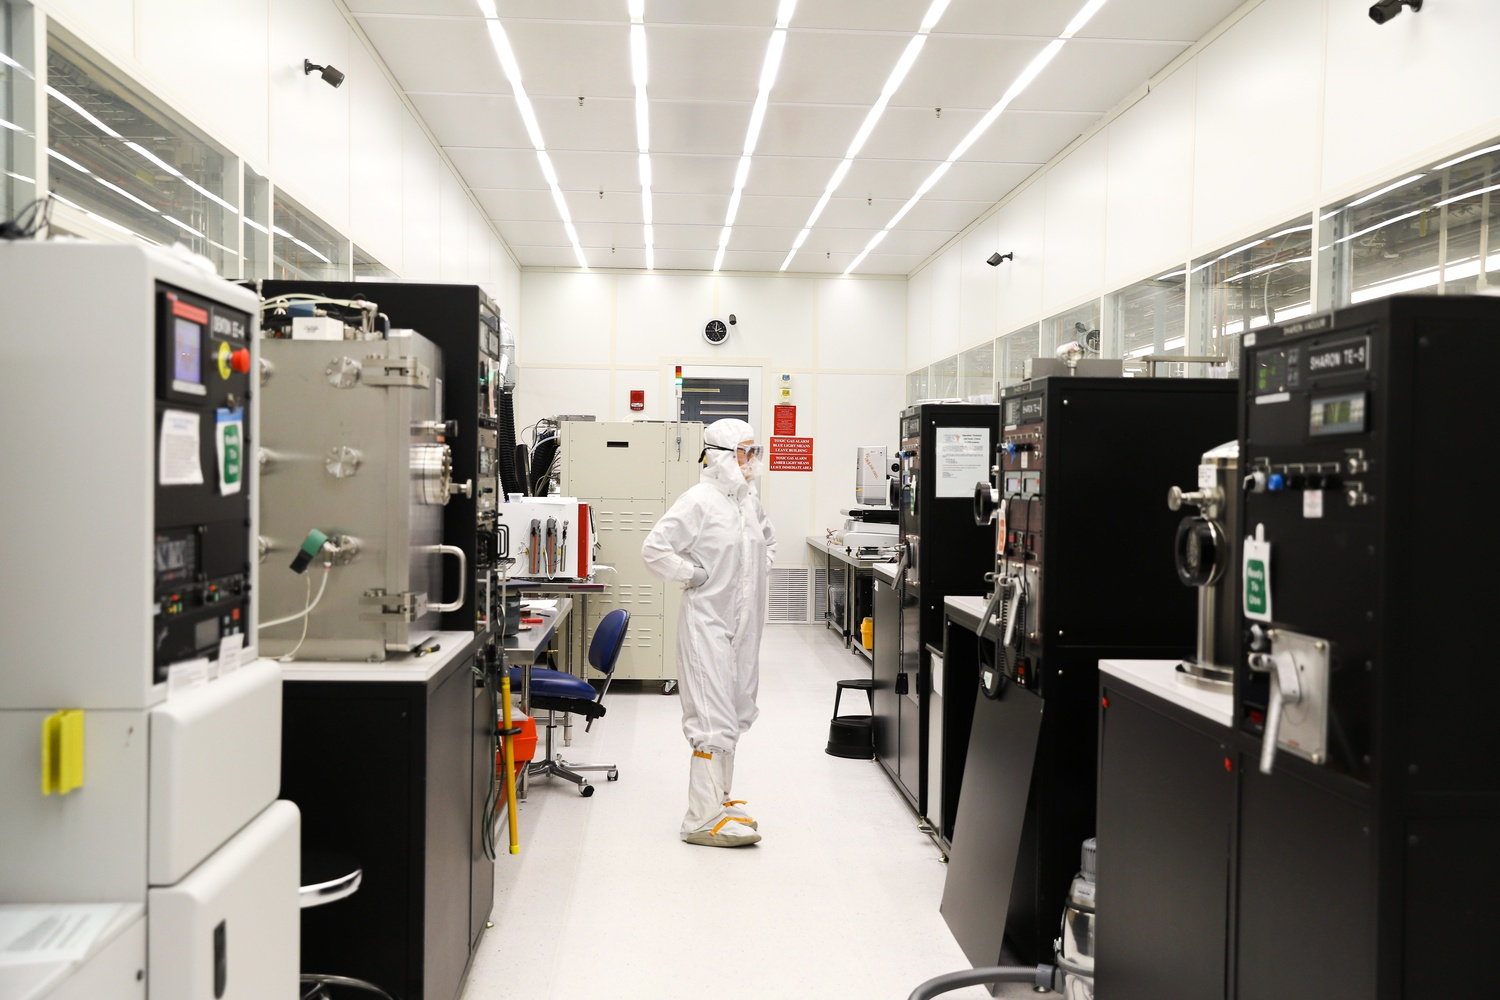 Harvard's Center for Nanoscale Systems is a facility that focuses on nanofabrication, imaging, and nanoscale analysis. It is located in The Laboratory for Integrated Science and Engineering at 19 Oxford Street.